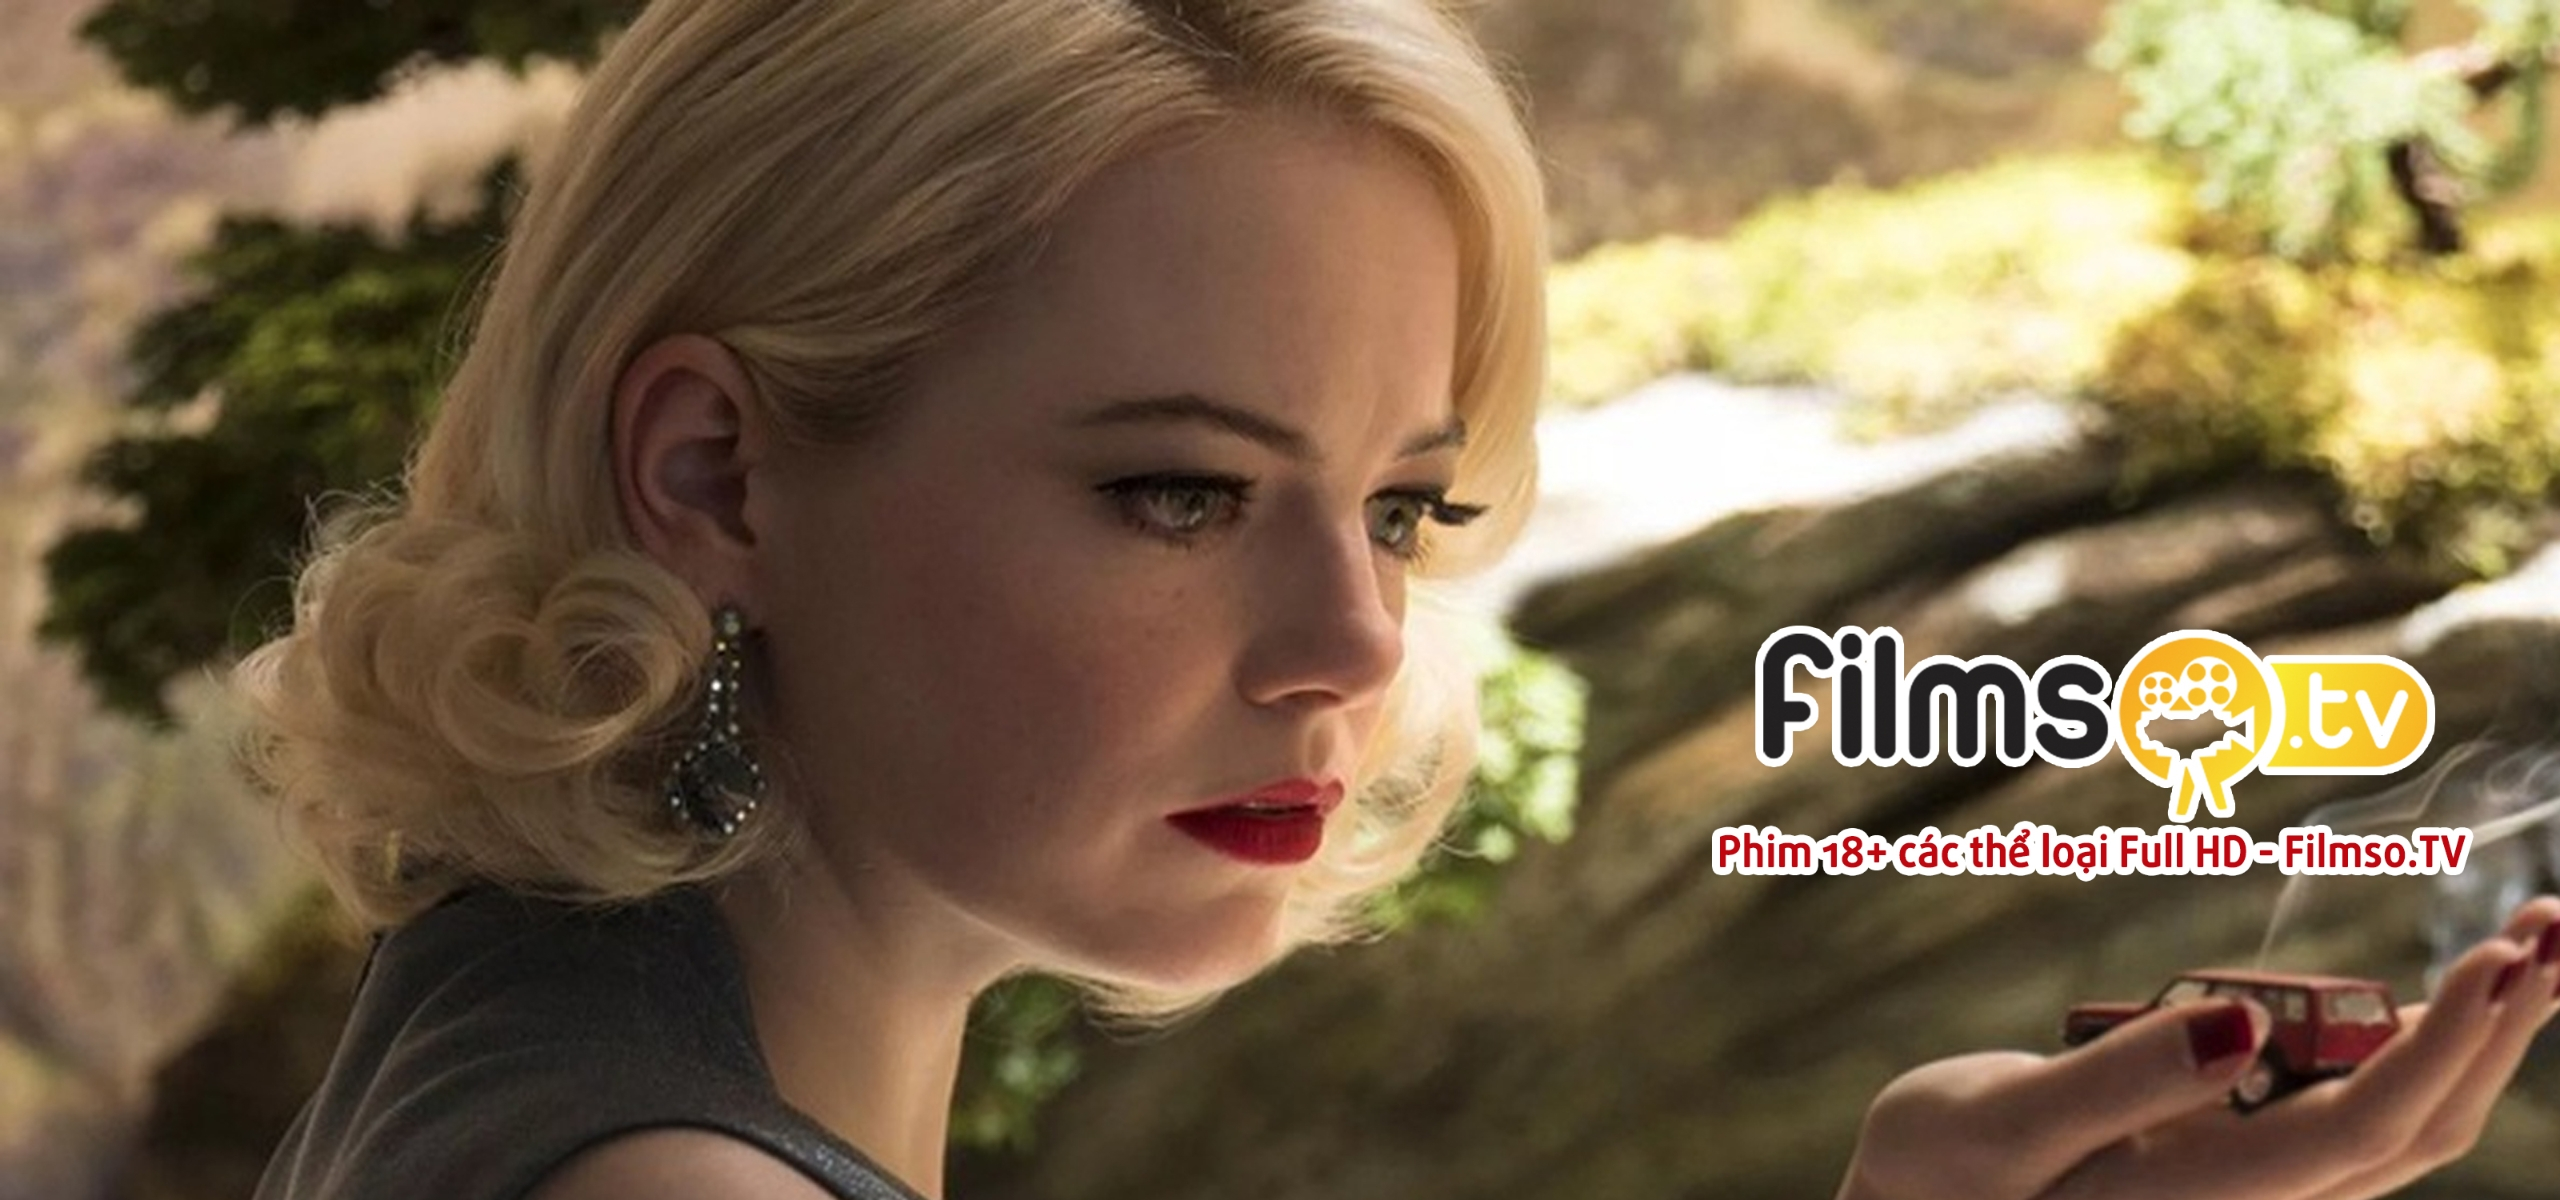 Filmso TV (@filmsotv) Cover Image